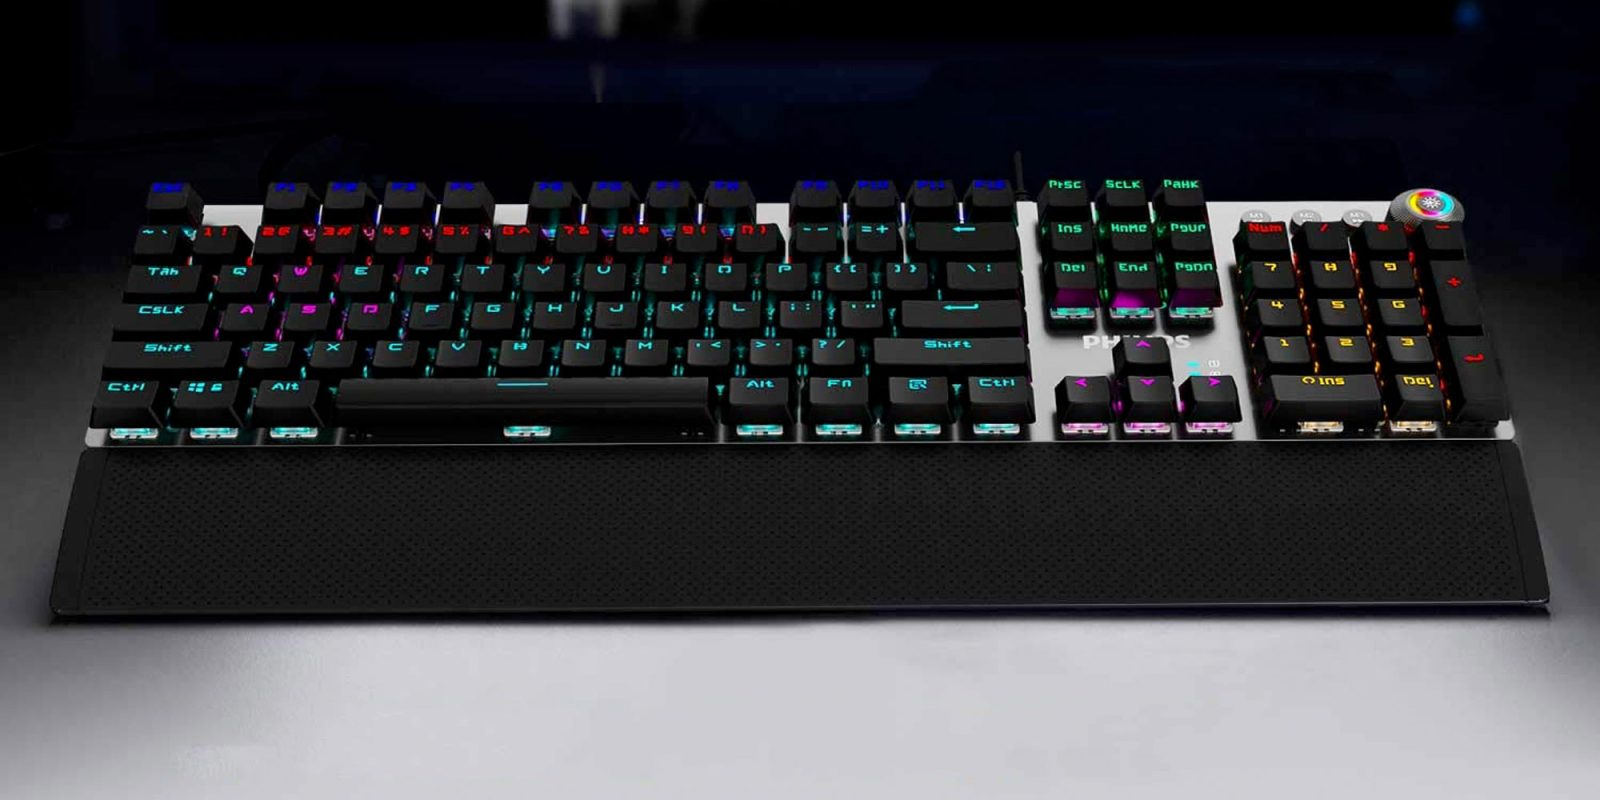 Philips' new gaming peripherals are great for budget setups w/ prices from $8